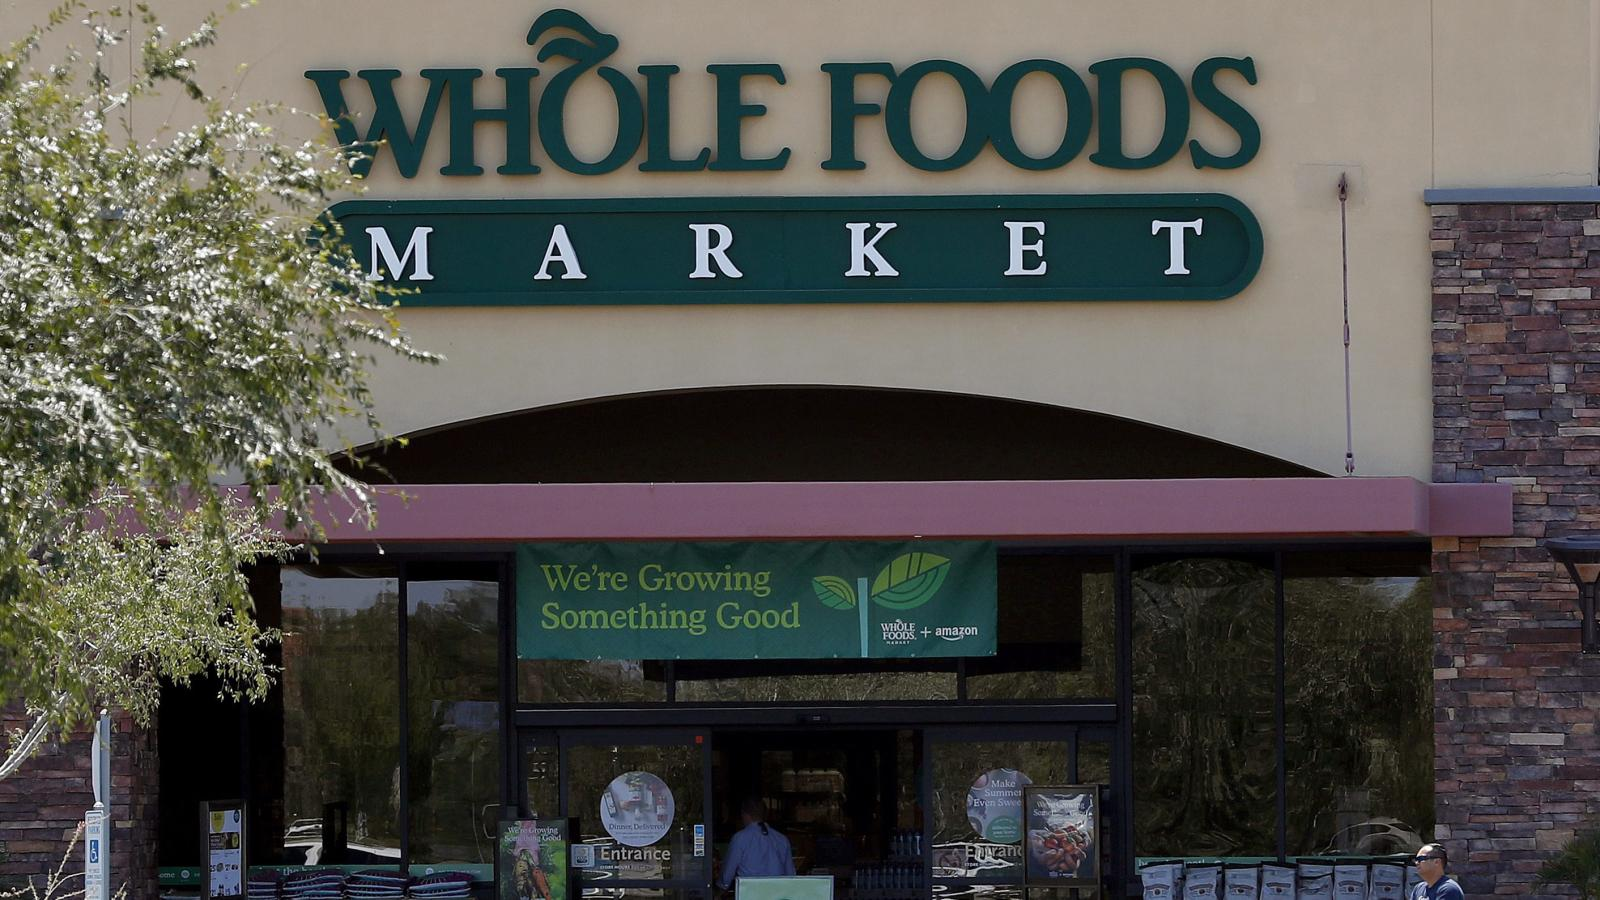 Amazon Amzn Just Explained How Whole Foods Fits Into Its Plan For